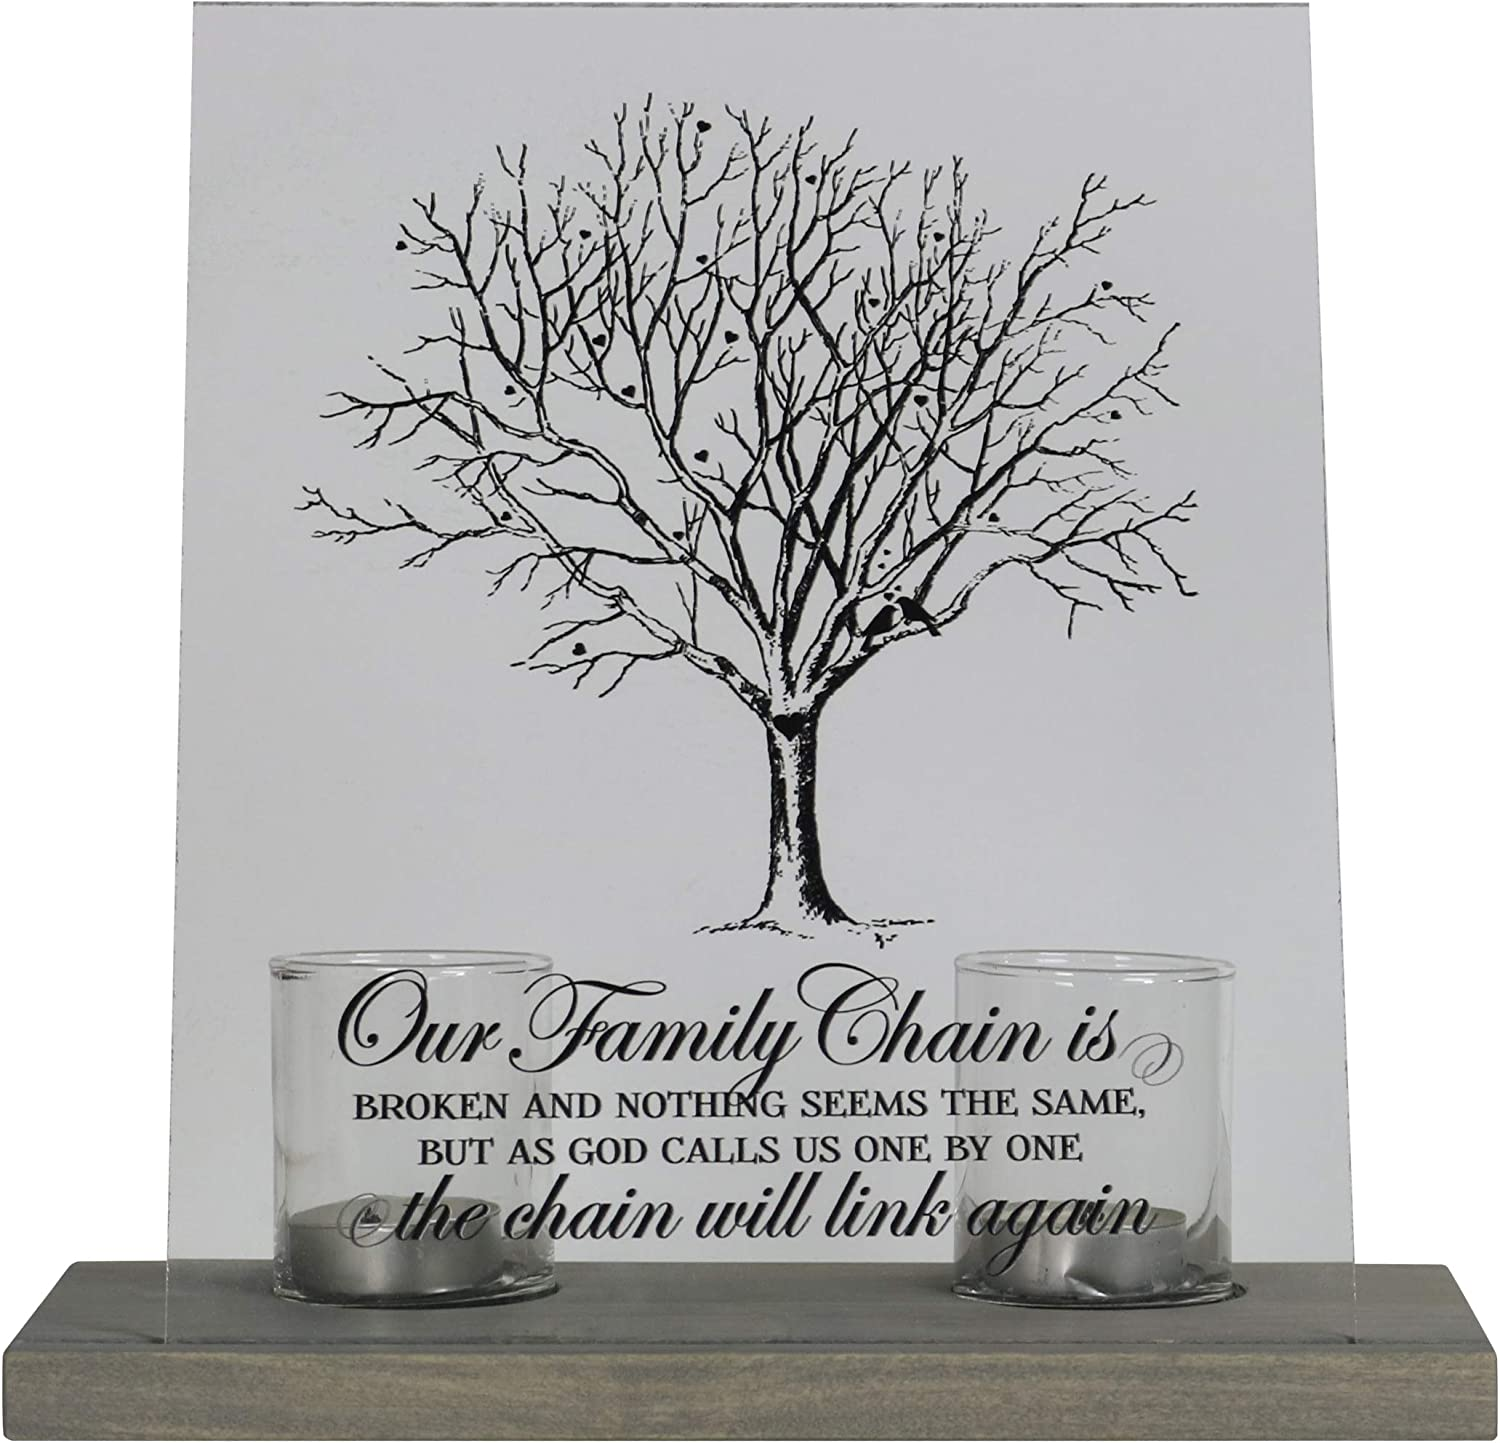 LifeSong Milestones Personalized Memorial Votive Candle Holder with 8x10 Acylic Sign in Remembrance Loss of Loved One with Wooden Base Condolence Bereavement Gift Our Family Chain